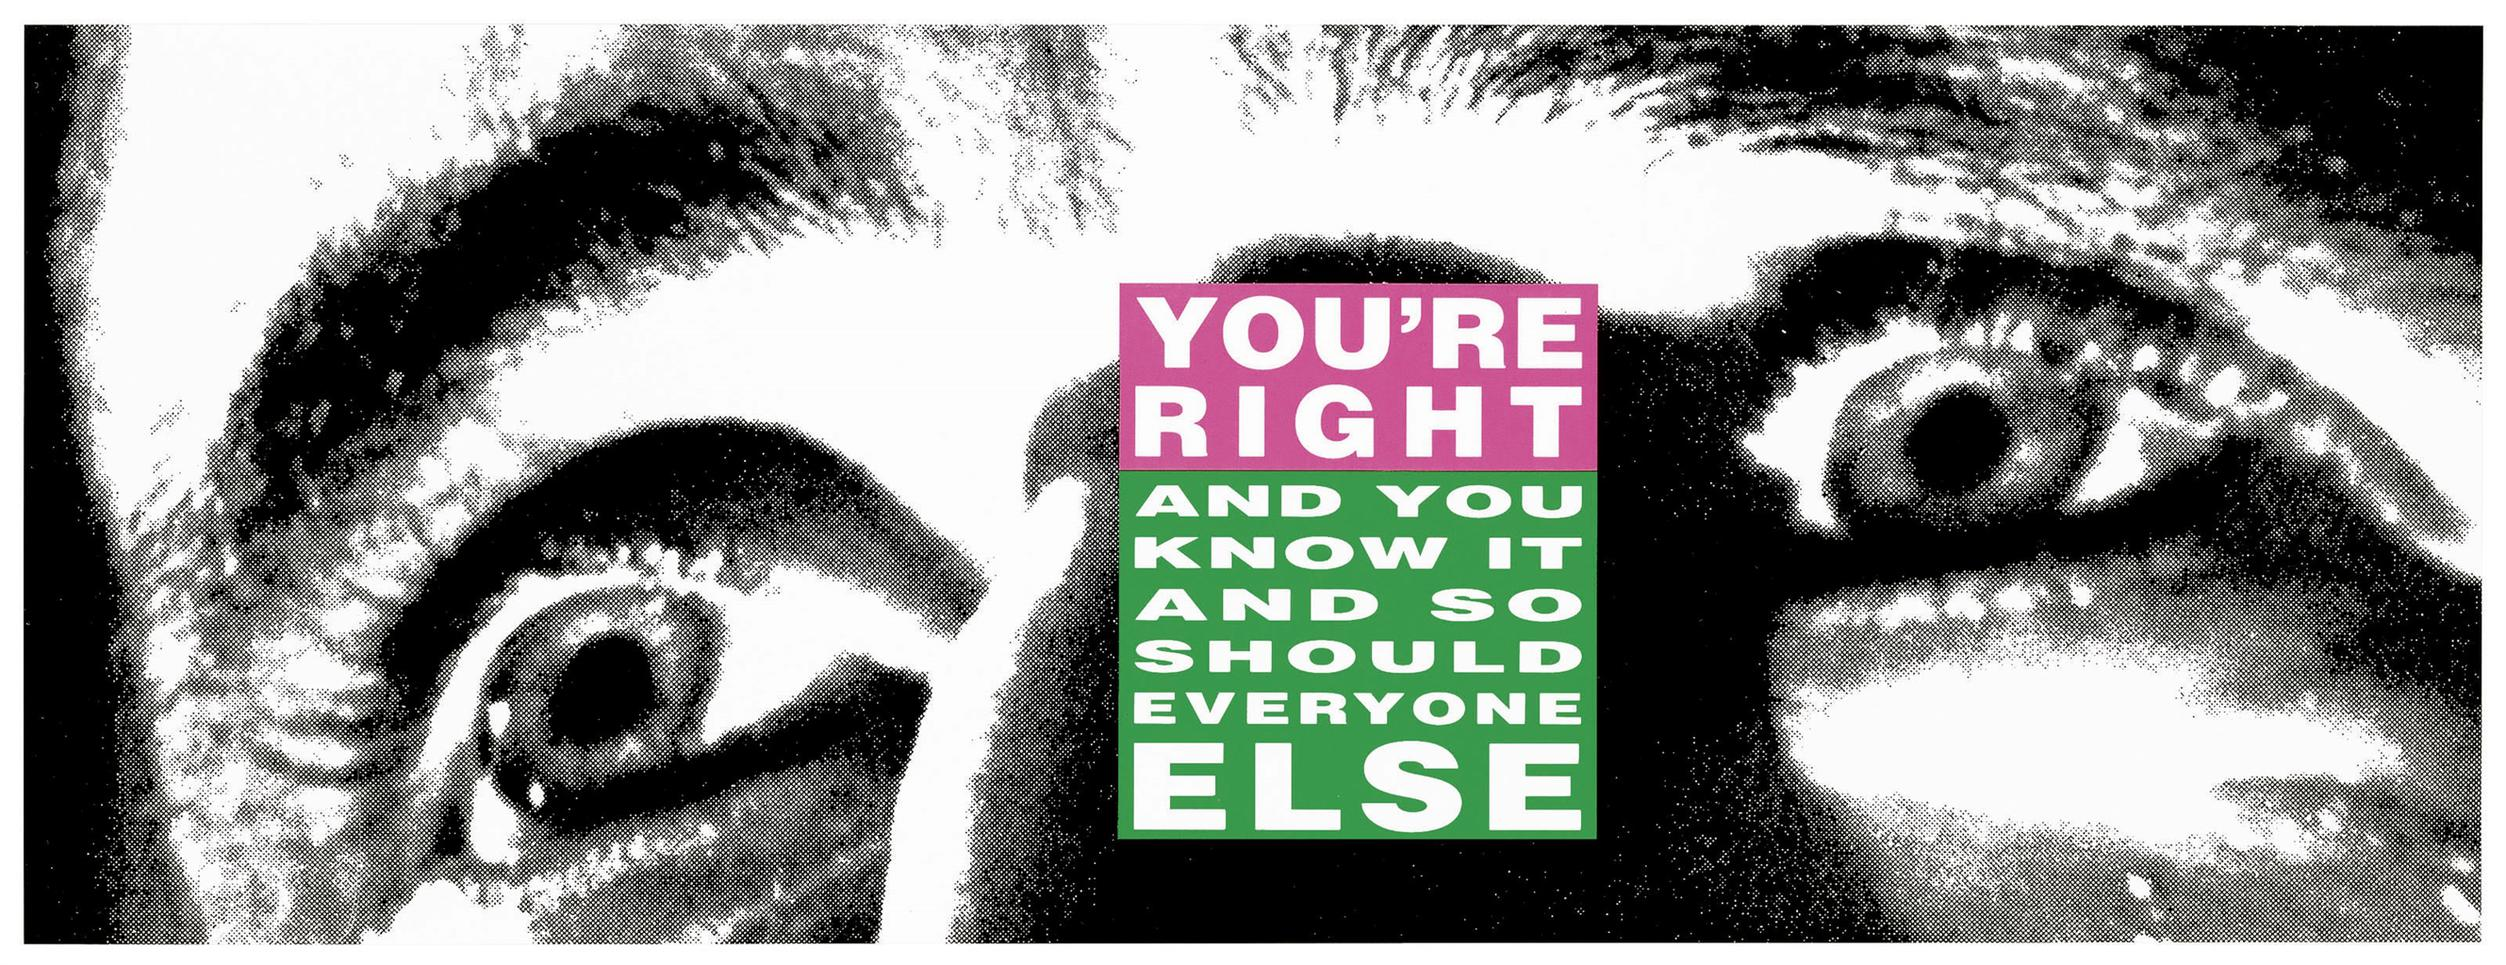 Barbara Kruger-Youre Right (And You Know It And So Should Everyone Else)-2010